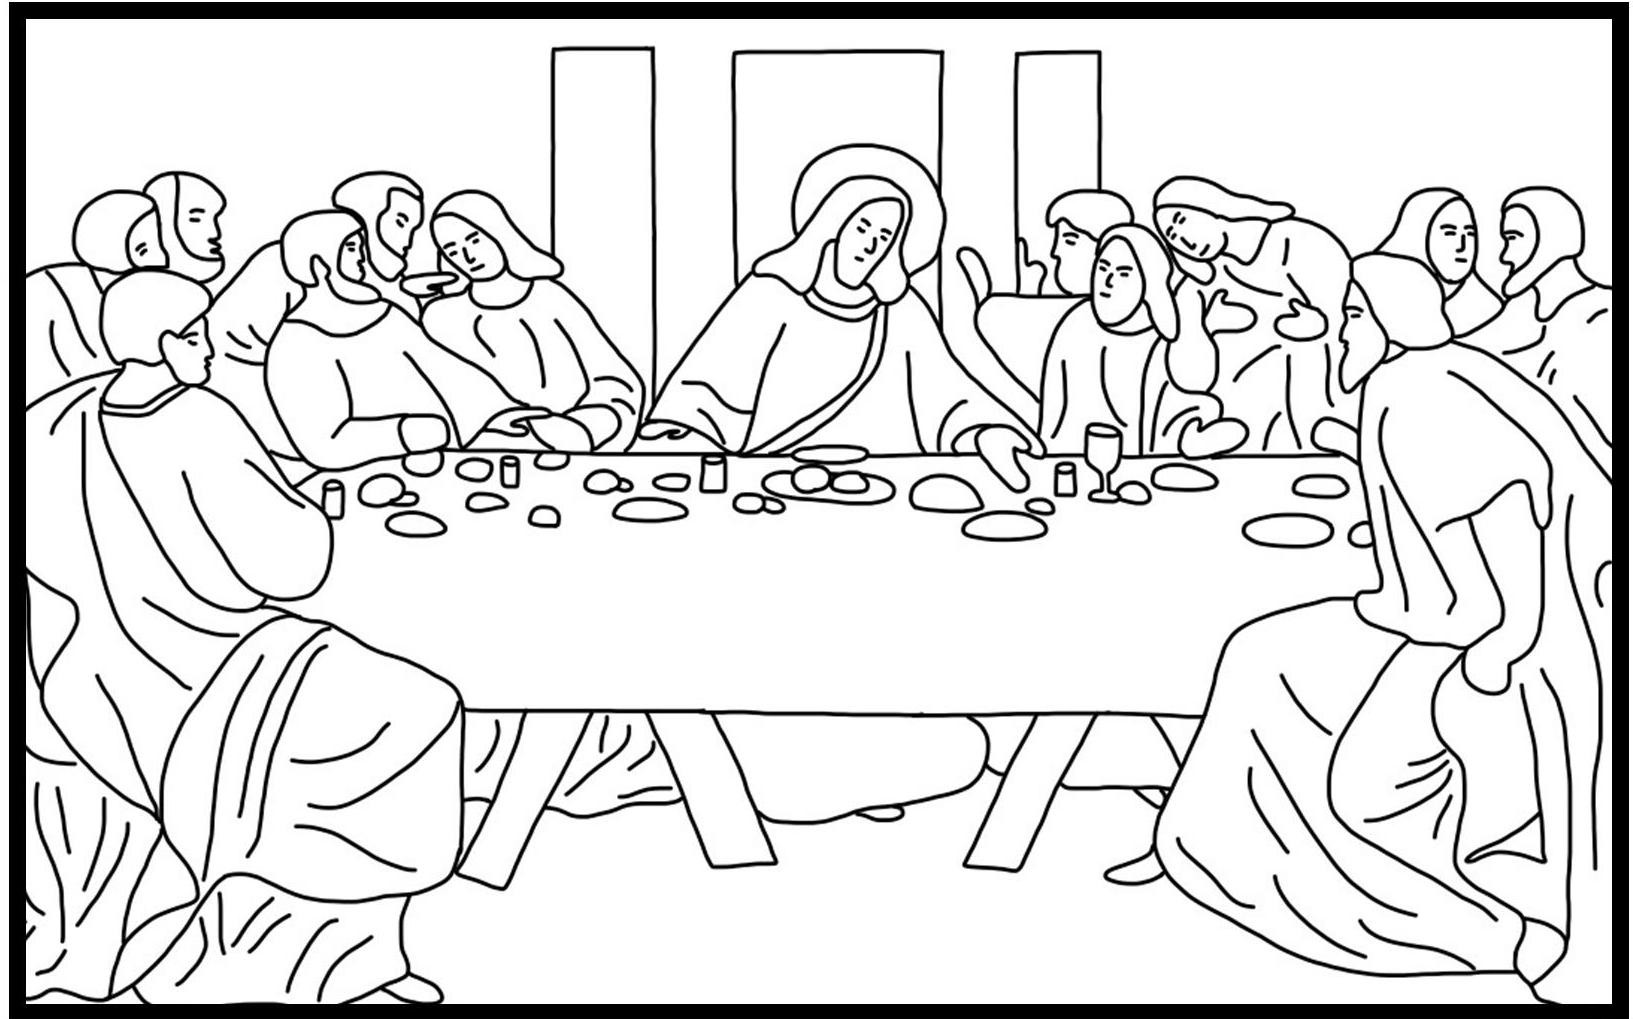 Last Supper Coloring Pages Printable  Lent Coloring Pages Best Coloring Pages For Kids